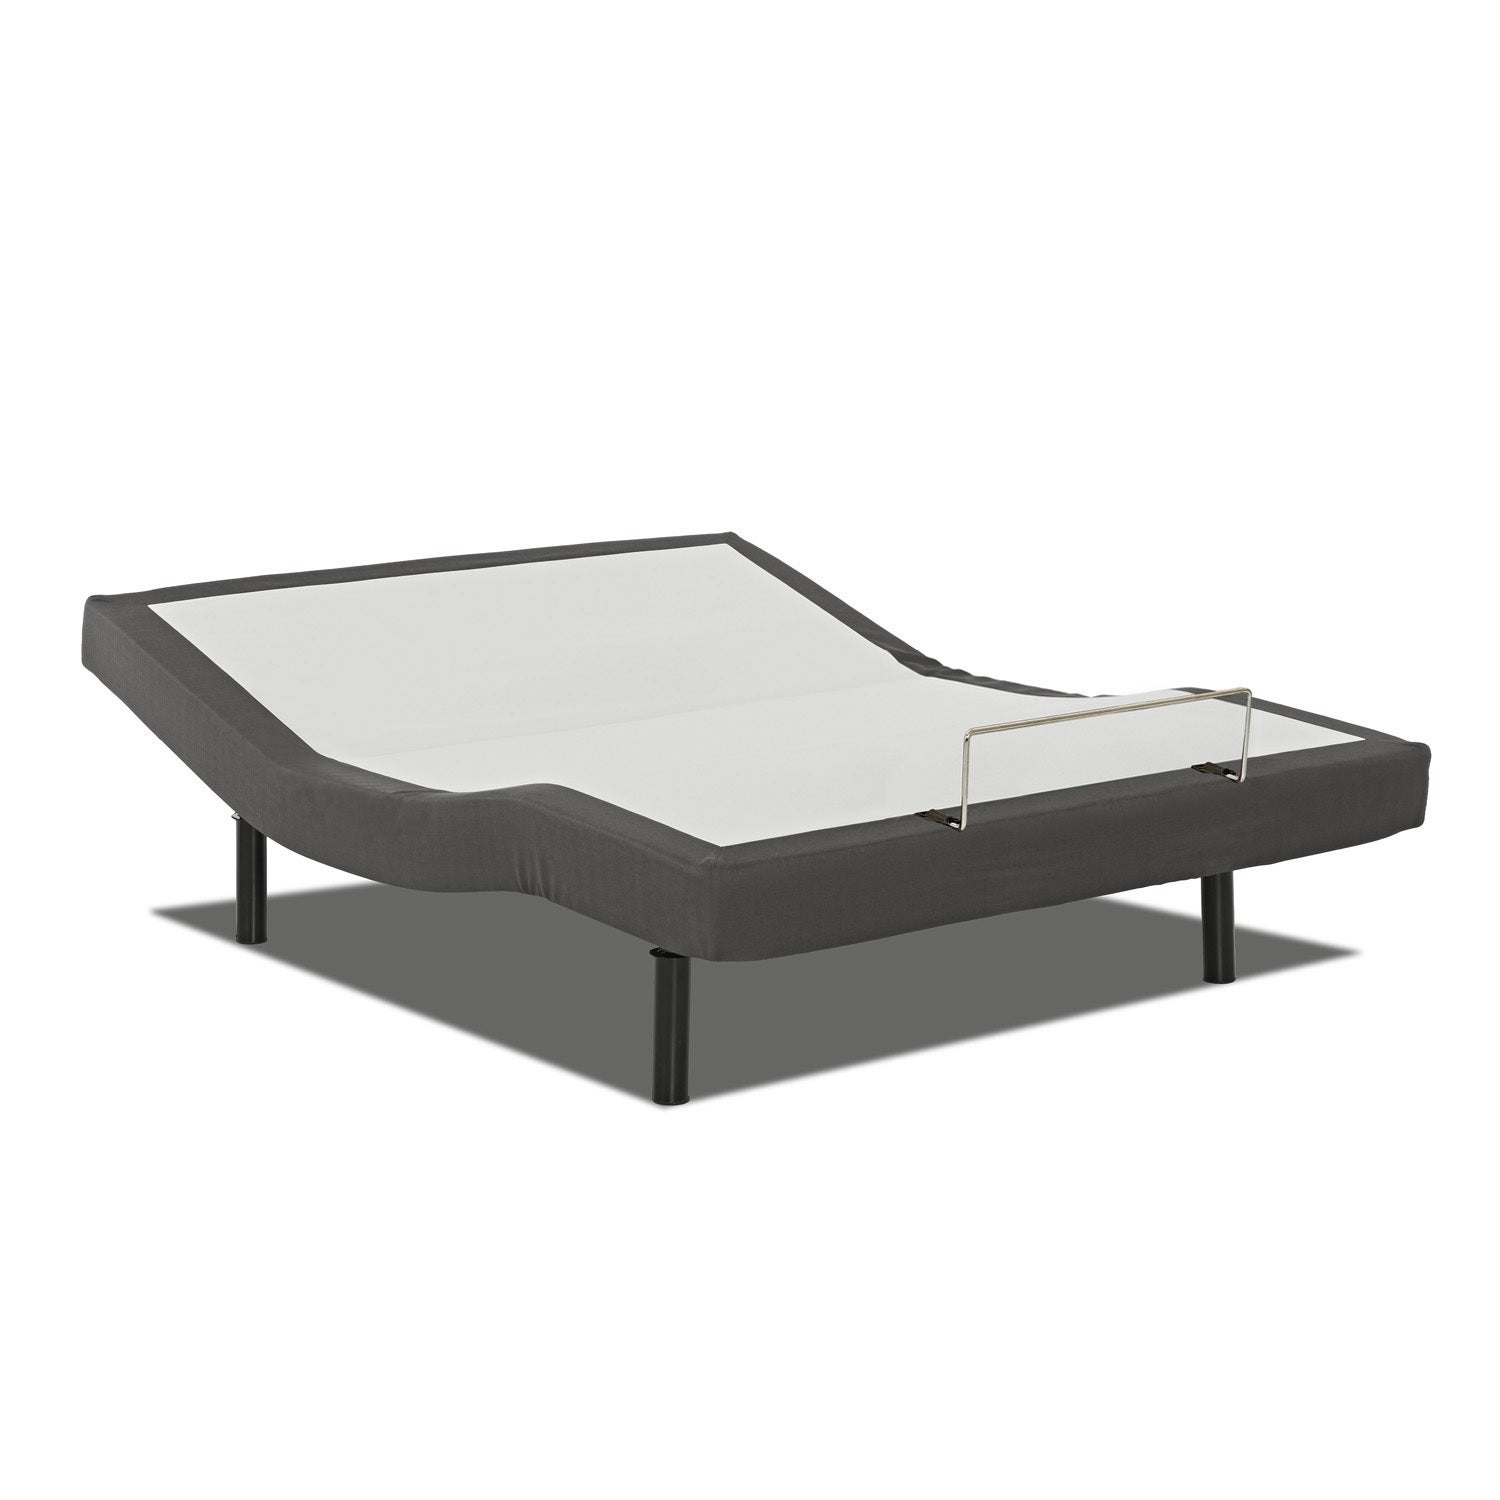 Shop purelife king size adjustable bed base with full range head and foot lift massage and wireless remote on sale free shipping today overstock com